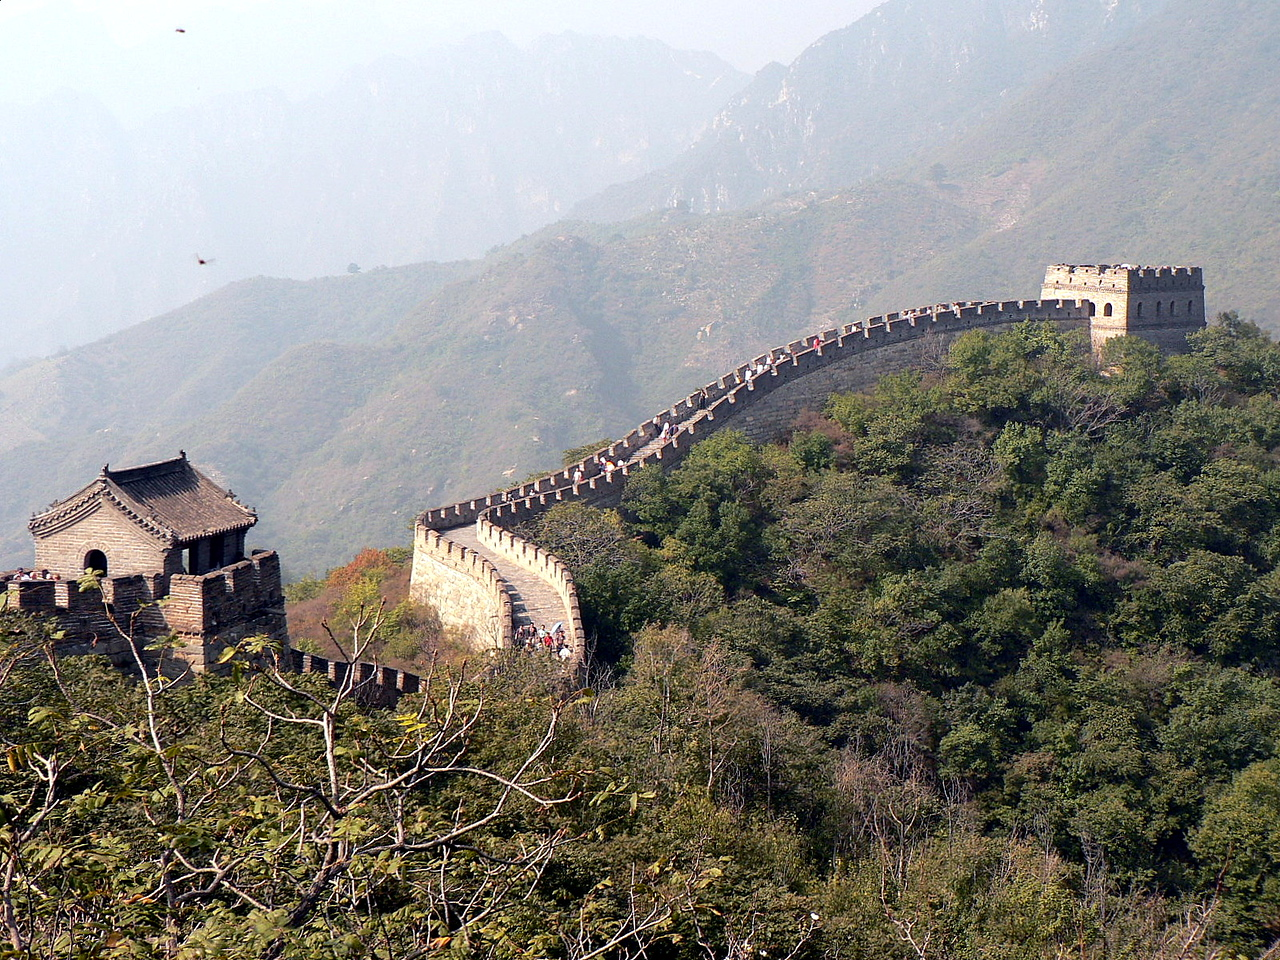 Many are familiar with the claim that the Great Wall of China is the only man-made object visible from space or from the moon with the naked eye. This is simply not true.